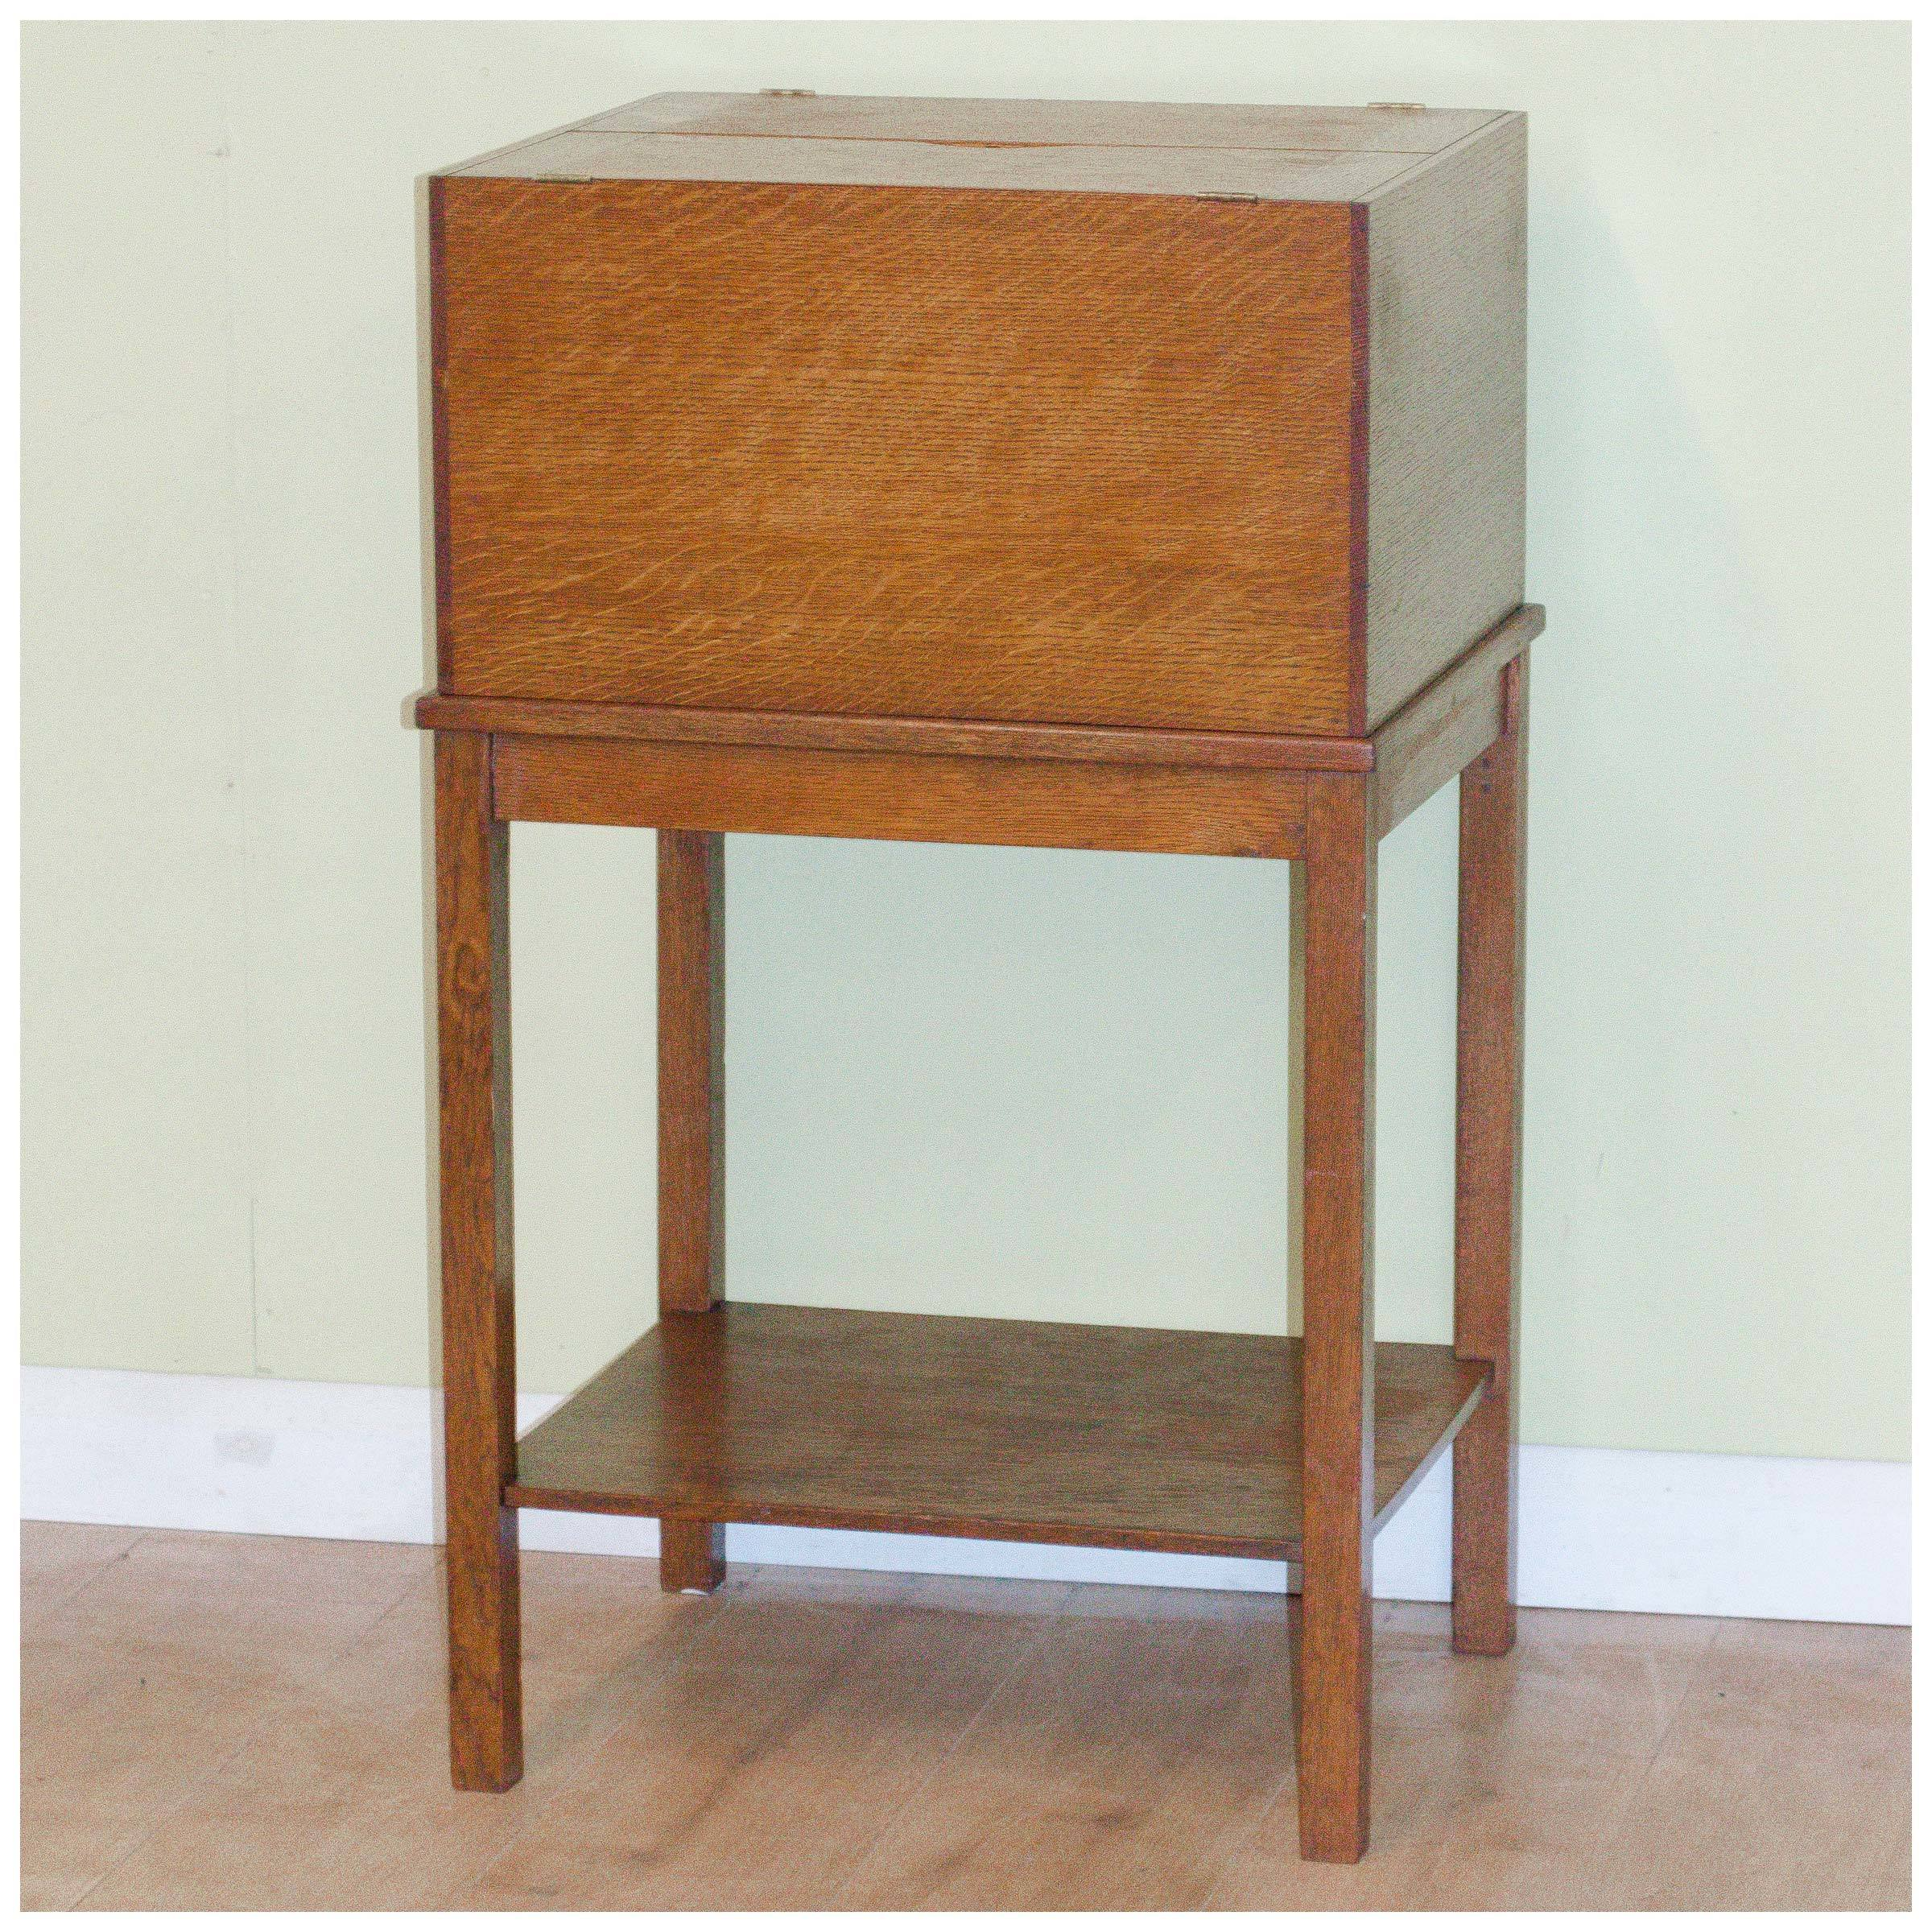 arts-and-crafts-oak-filing-boxcabinet-on-stand-manner-arthur-w-simpson-the-handicrafts-kendal-b0020146a.jpg